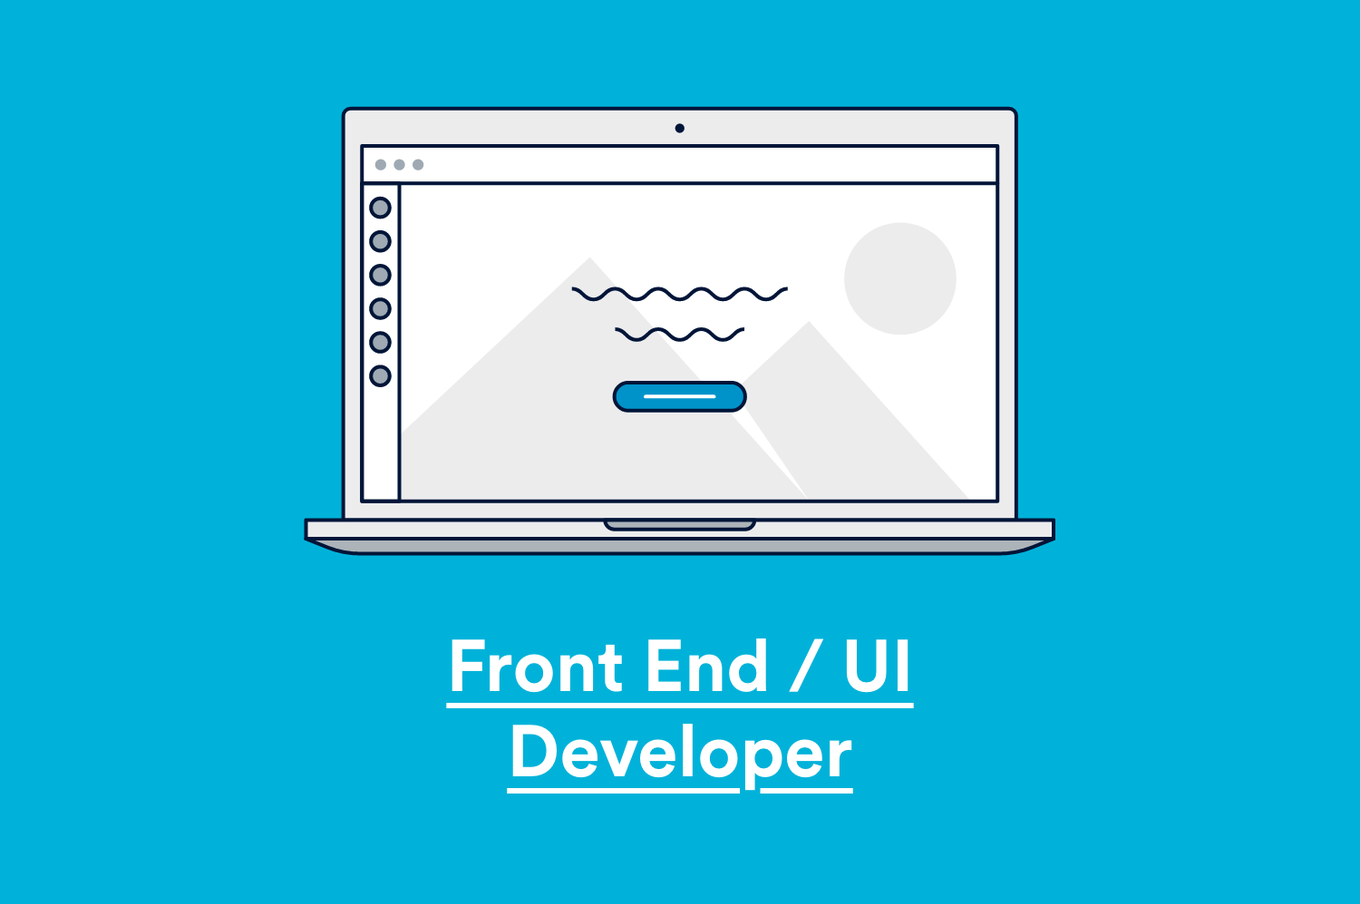 Front End/UI Developer